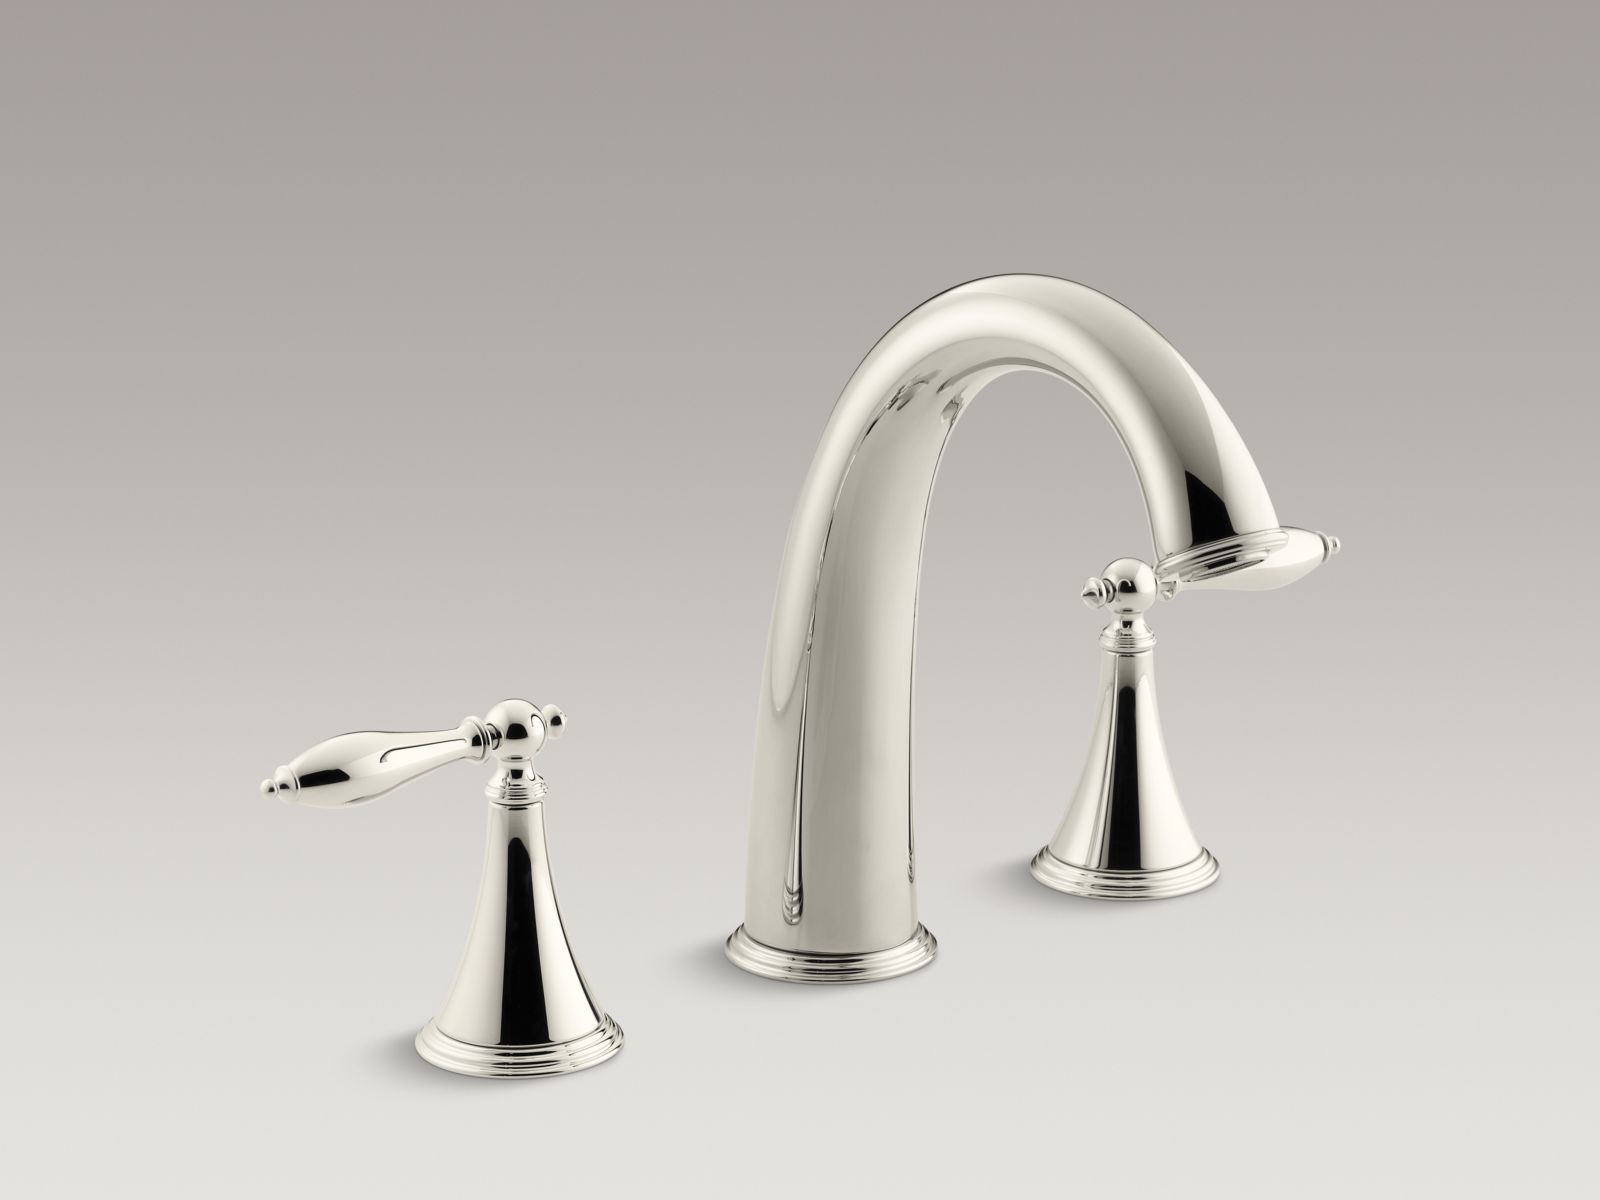 Kohler Finial® Traditional K-T314-4M-SN Deck-mount bath faucet trim for high-flow valve with lever handles, valve not included Vibrant Polished Nickel